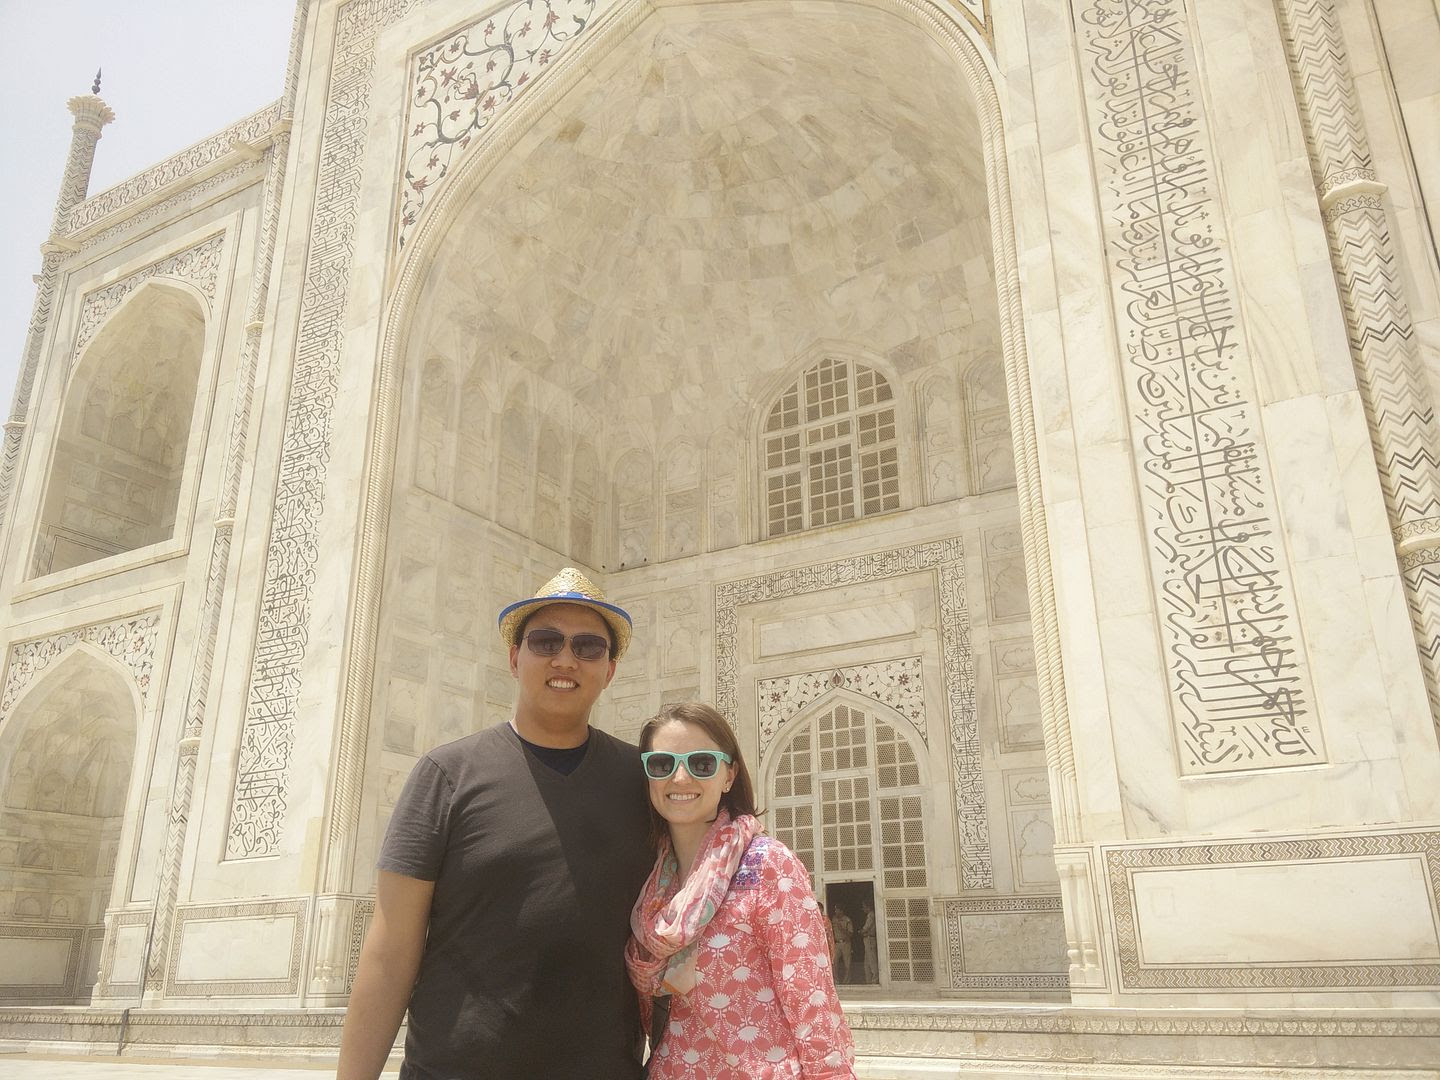 Michael and Michelle at Taj Mahal in Agra, India photo  IMG_20150512_125506_zpsdzi3flv3.jpg